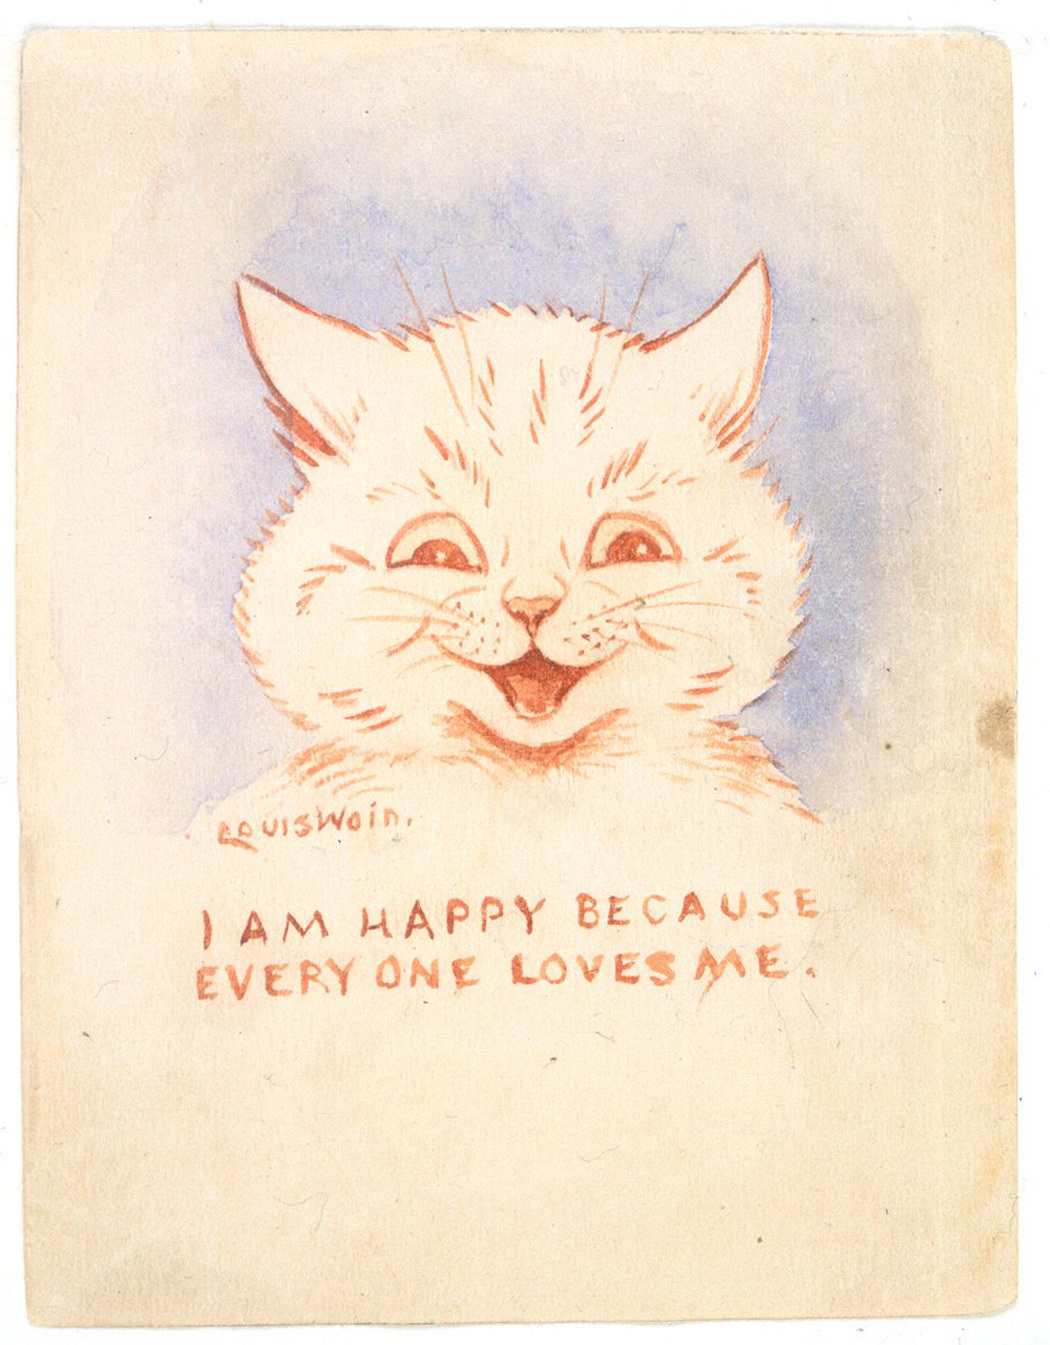 Louis Wain: The Man Who Drew Millions of Far-Out Cats - Flashbak